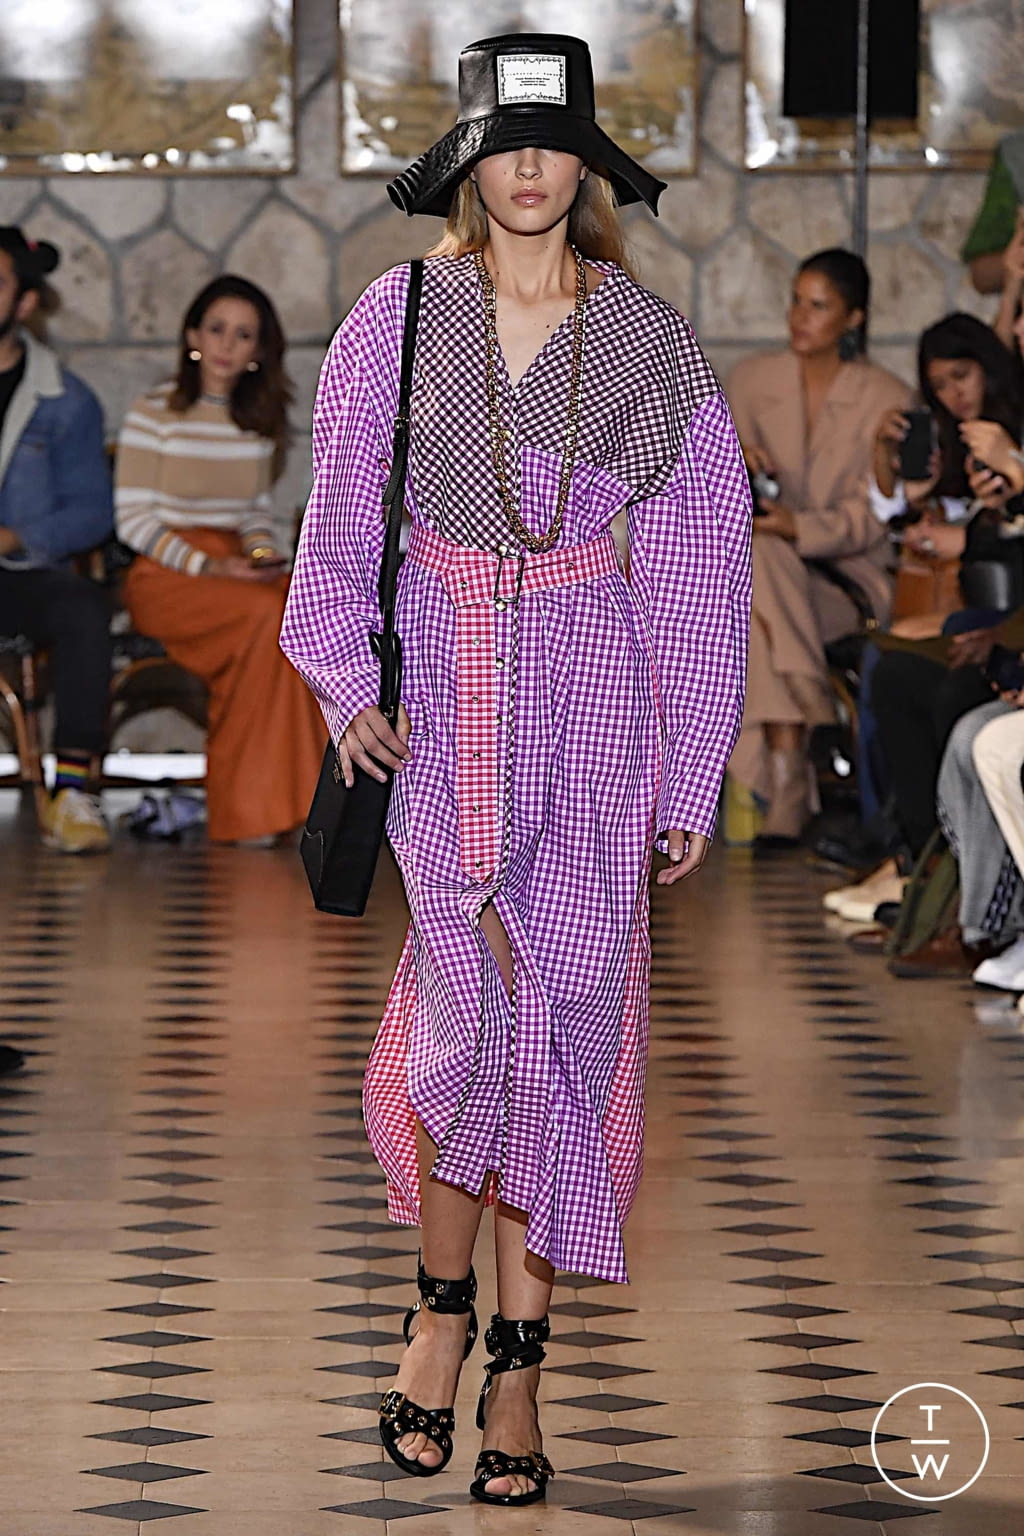 Fashion Week Paris Spring/Summer 2020 look 4 de la collection Victoria/tomas womenswear